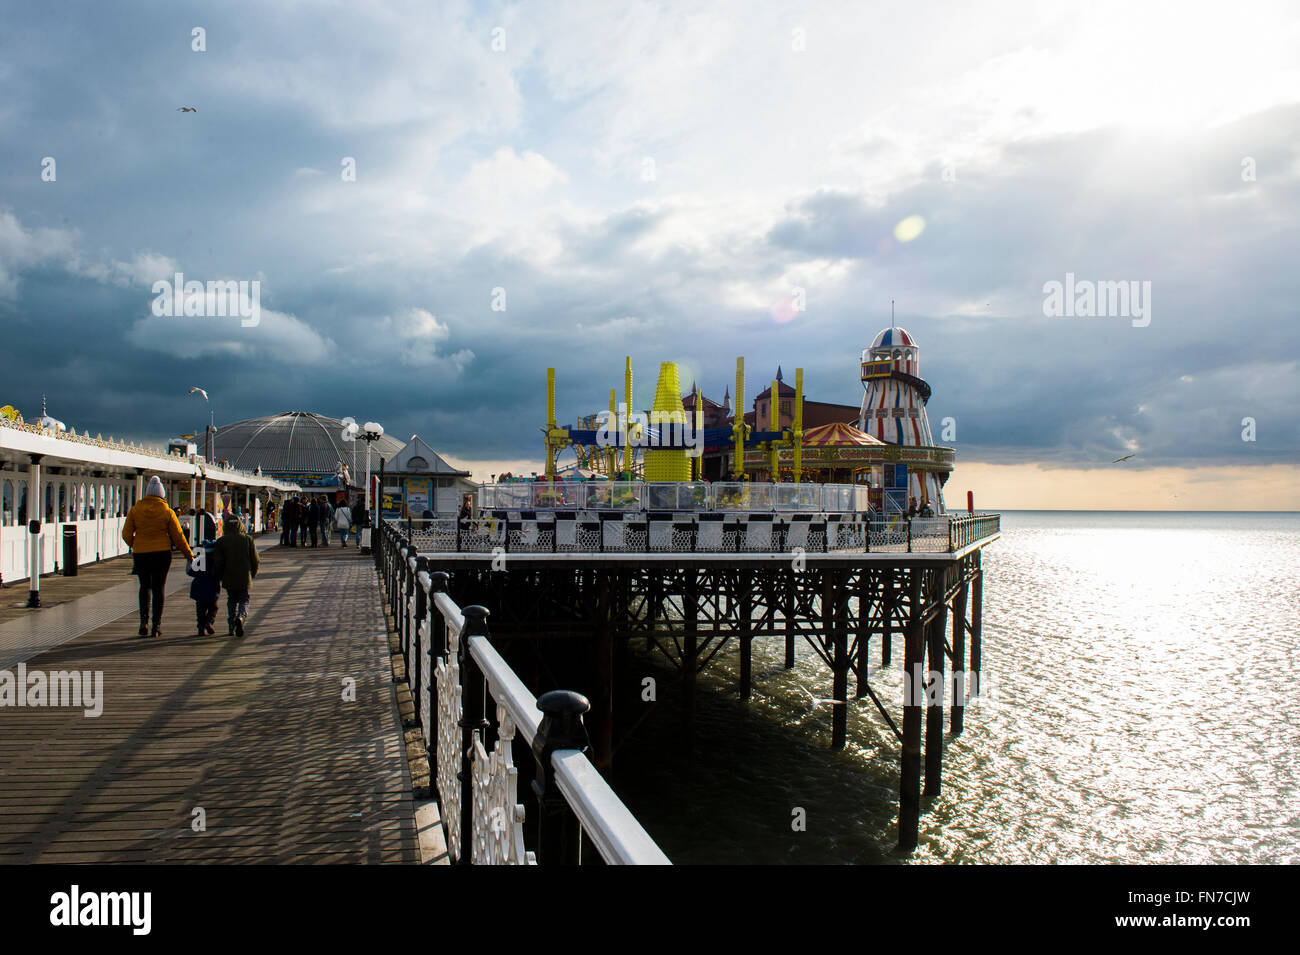 Brighton Pier looking towards the famous funfair and Rollercoaster at the far end. - Stock Image